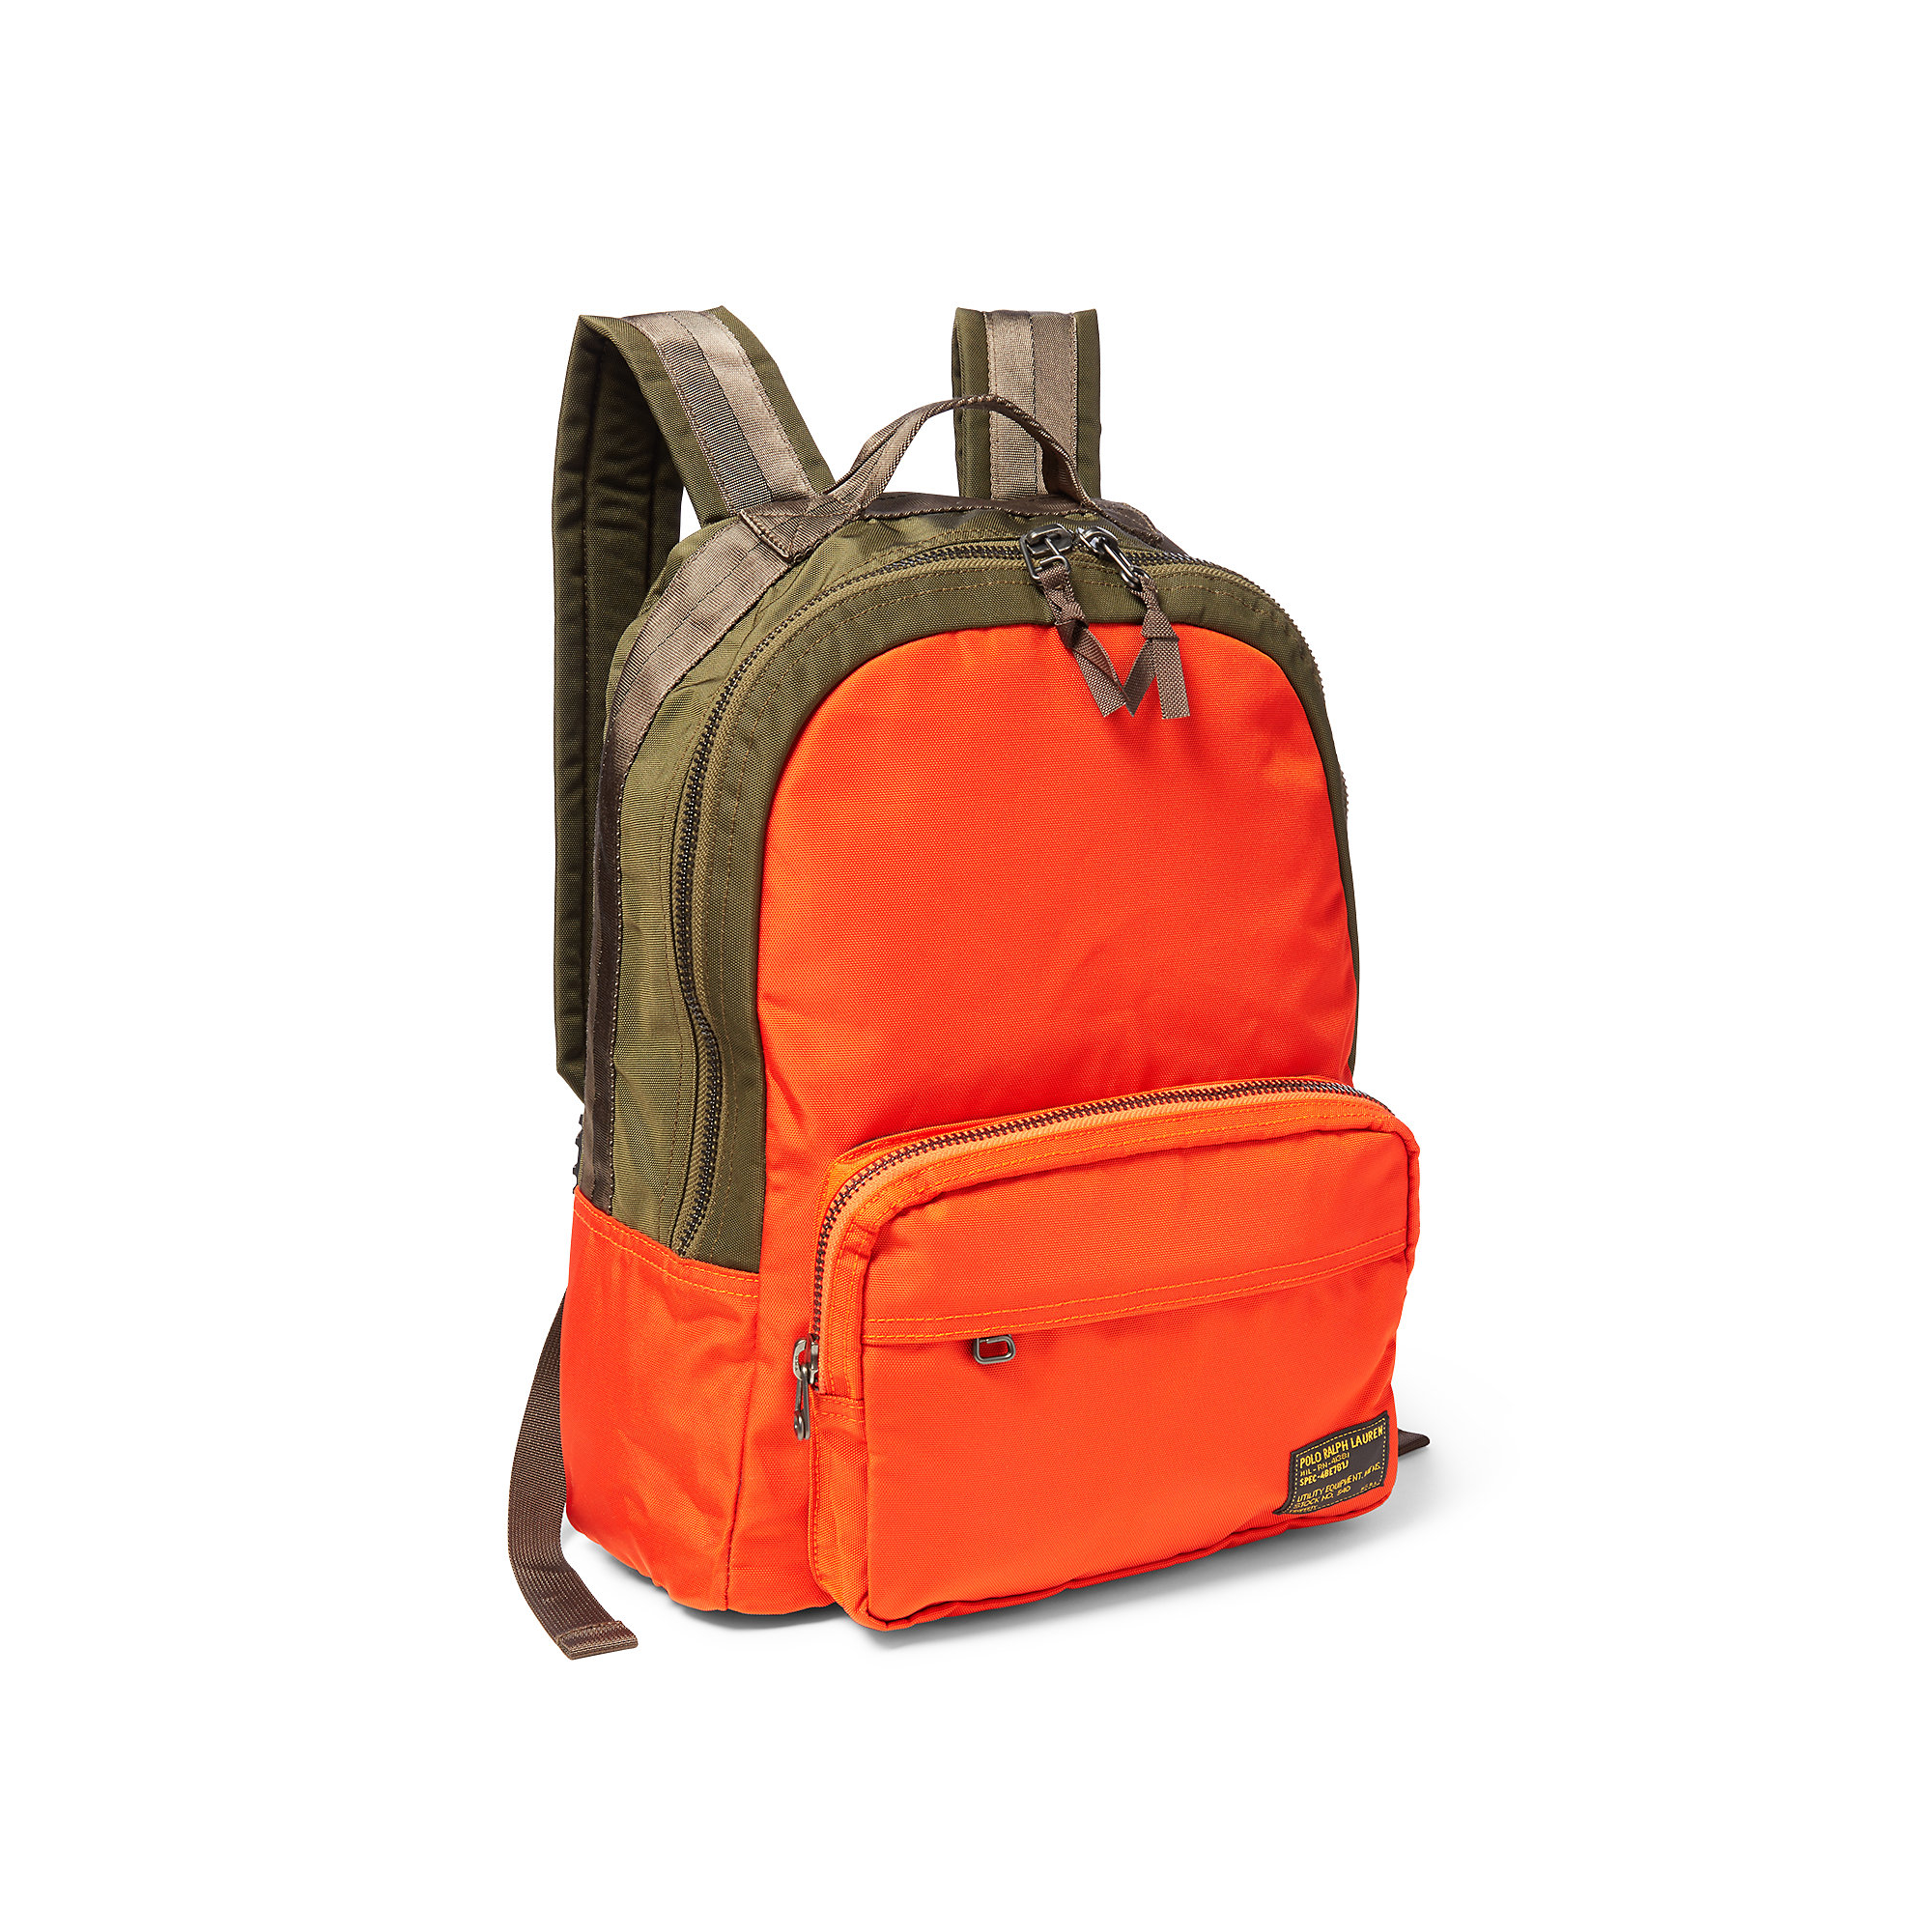 ac4dc228db6 Lyst - Polo Ralph Lauren Military Nylon Dome Backpack in Green for Men